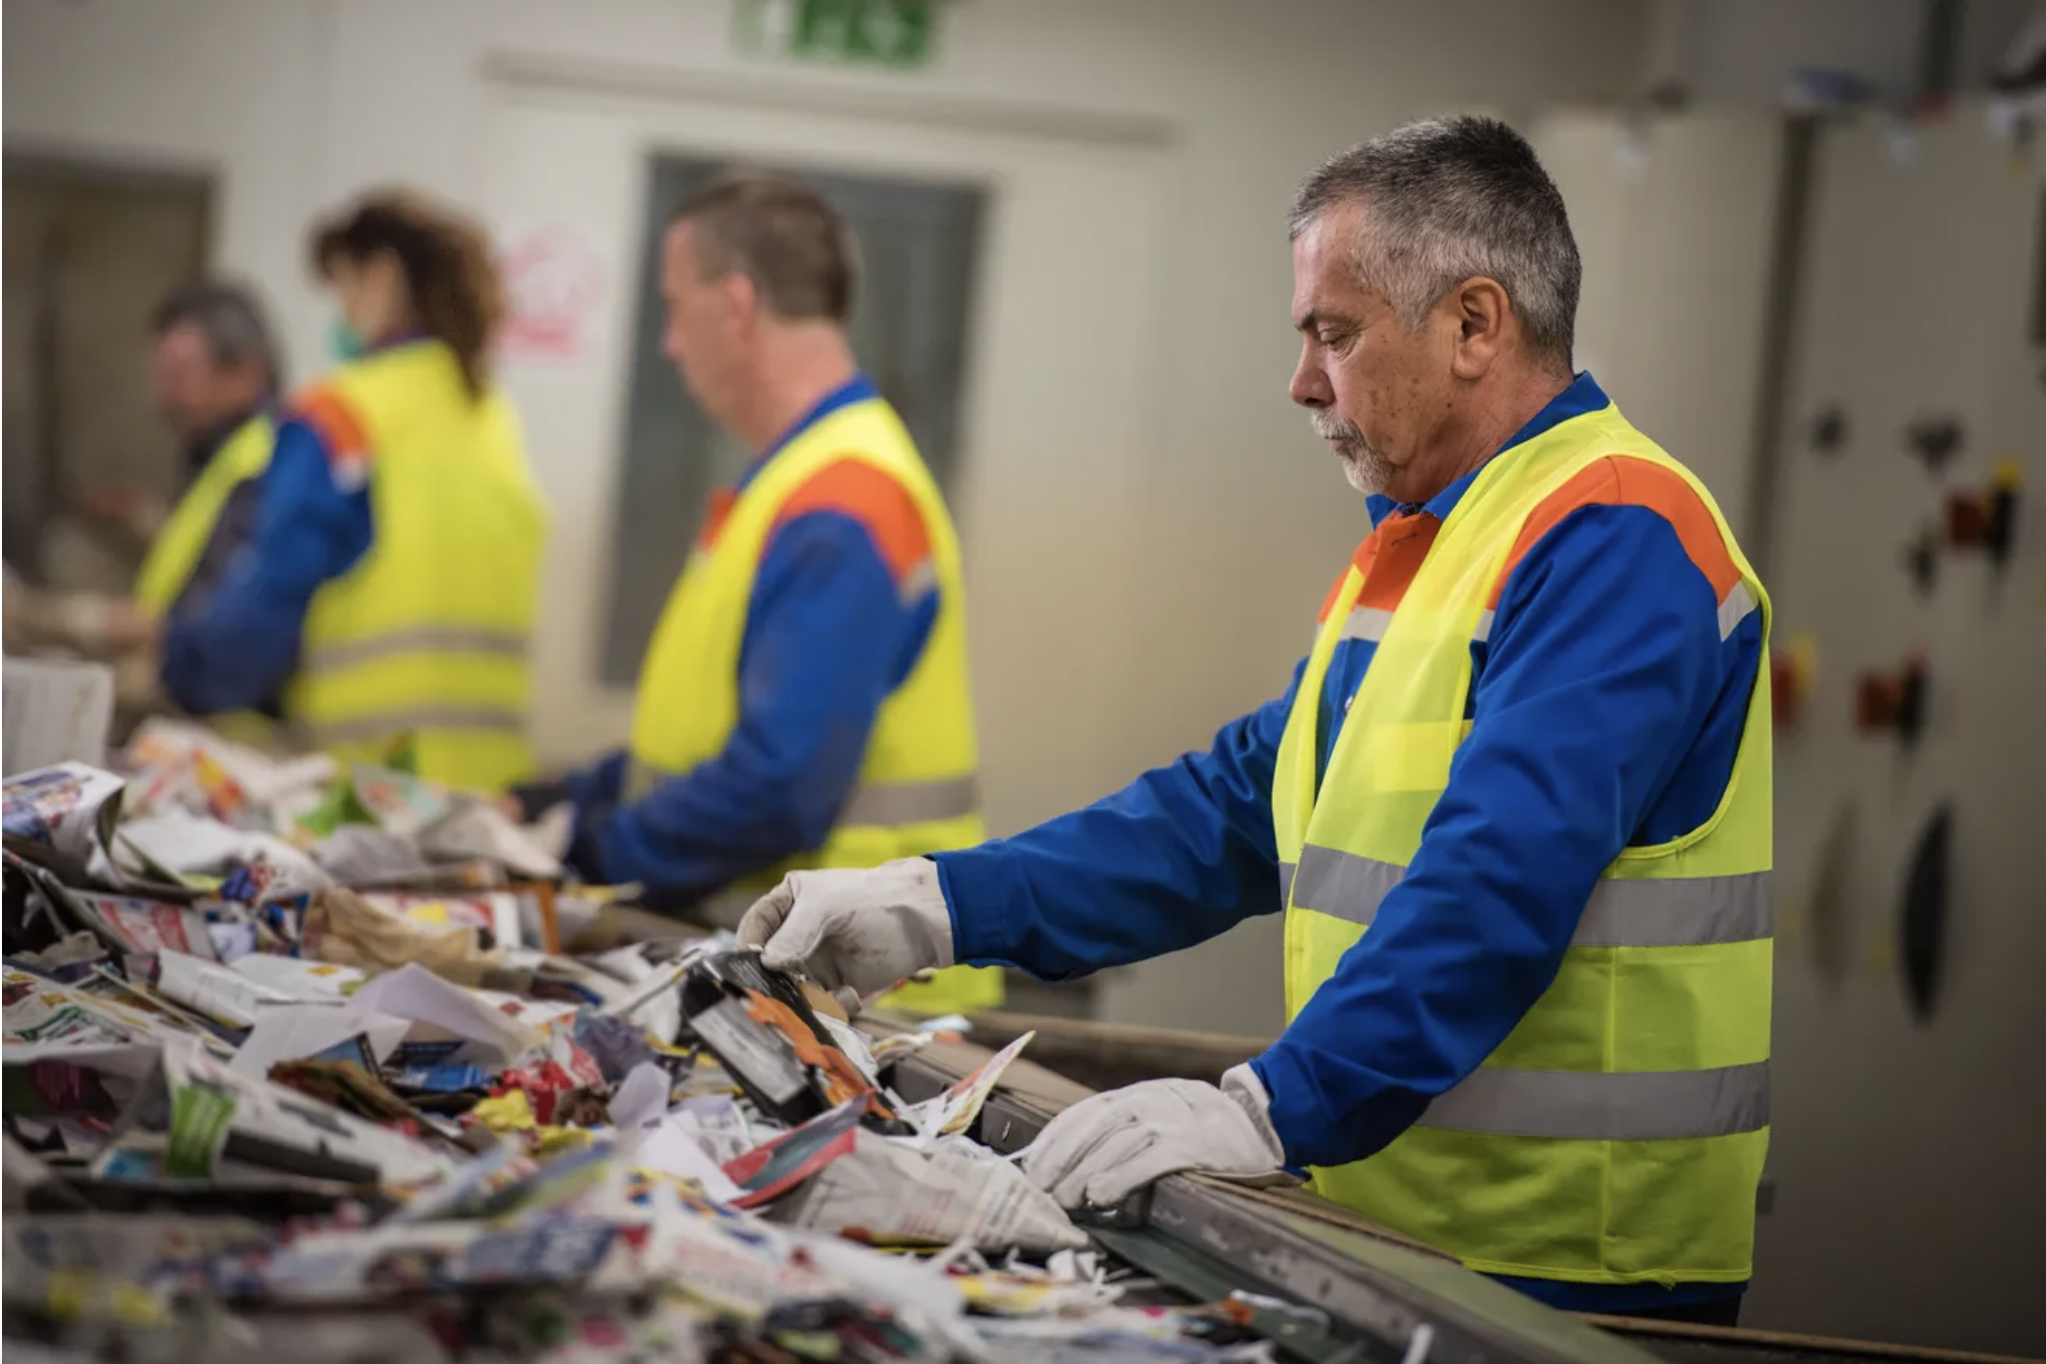 Recycling workers sort materials on the line